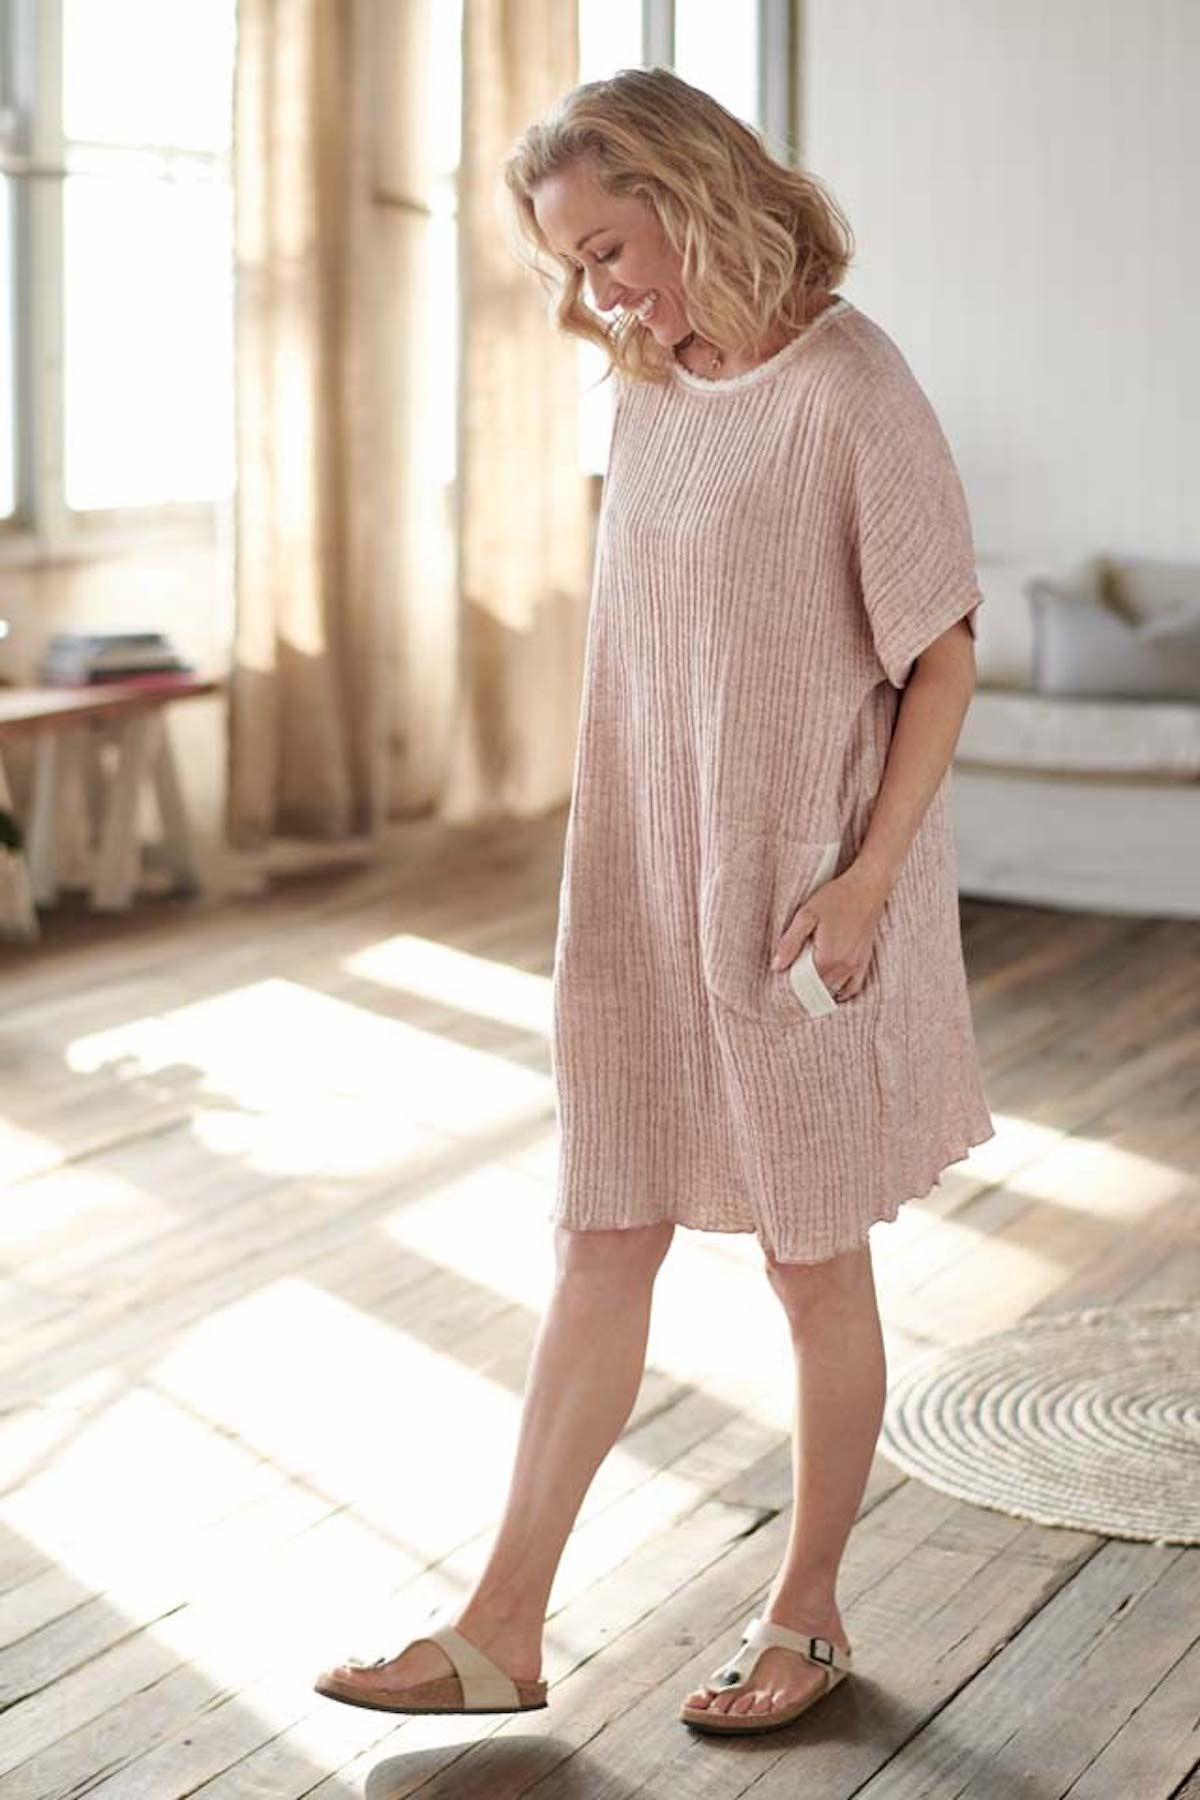 eadie lifestyle homewares clothing brand grace collection newcastle